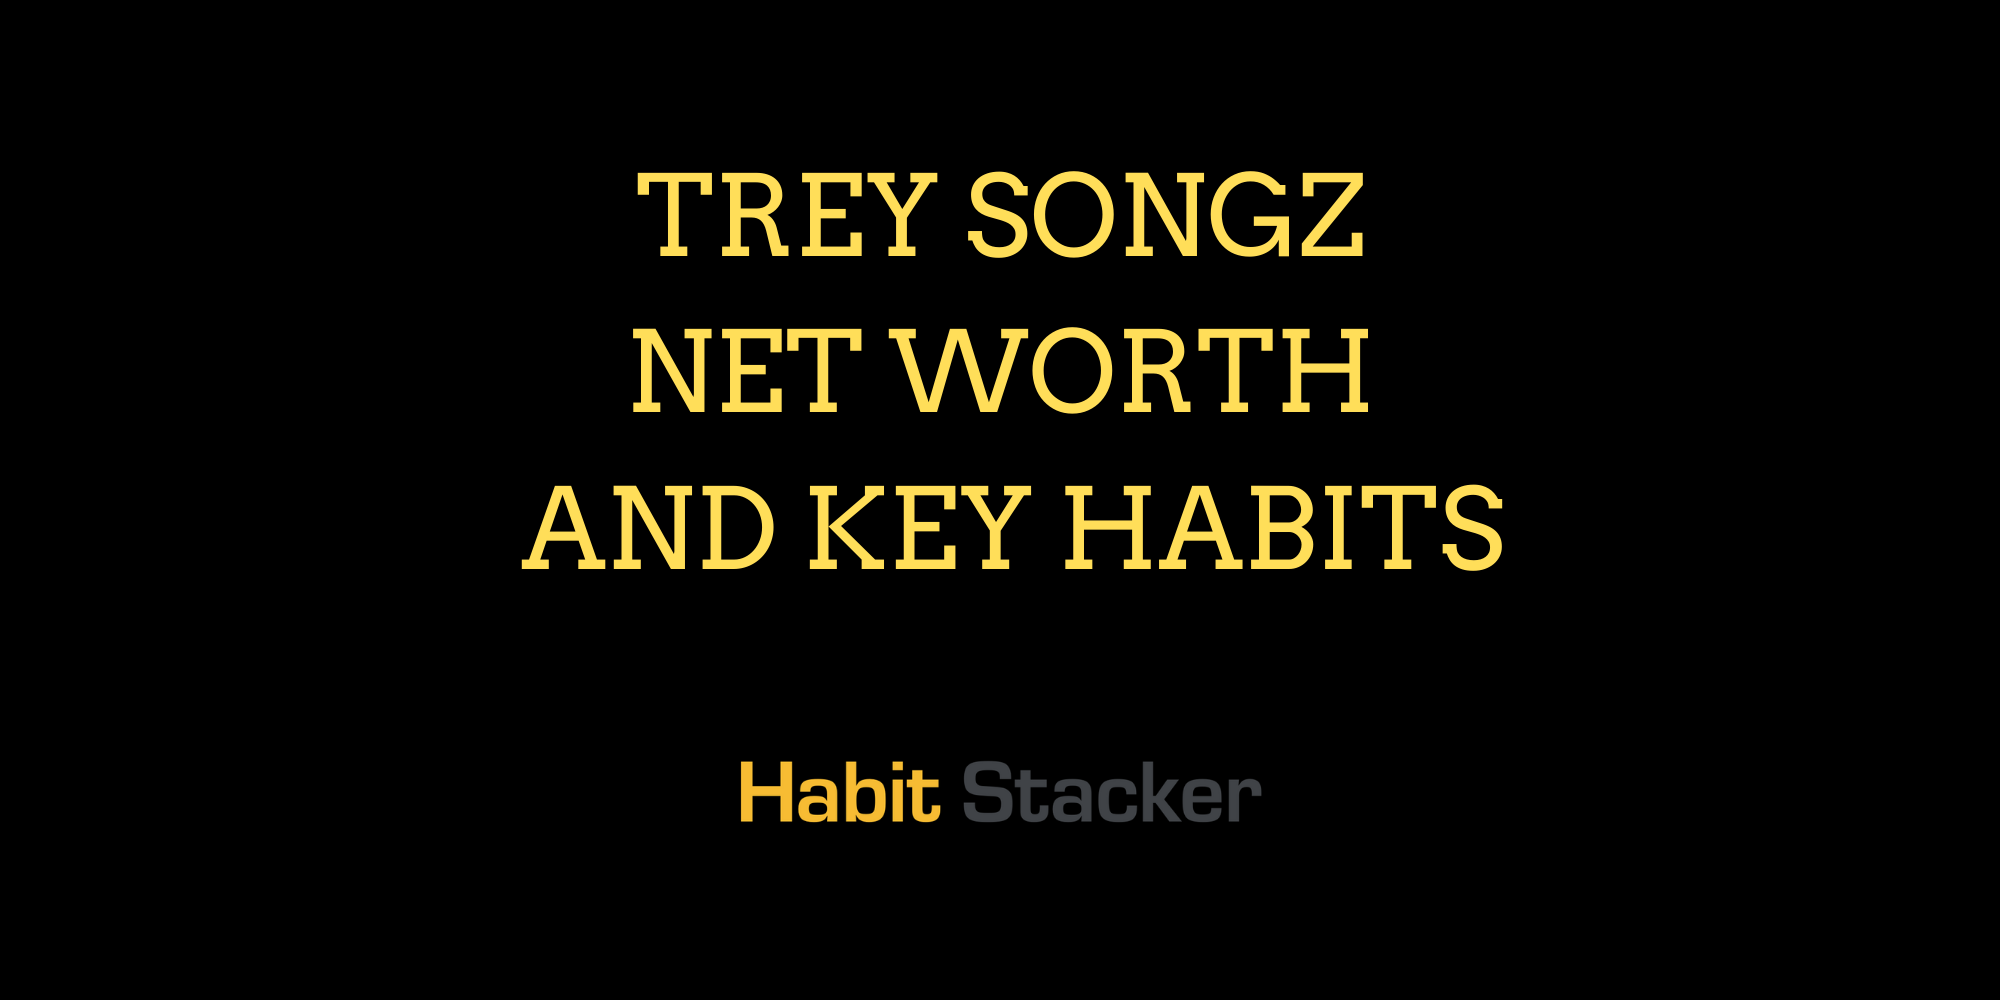 Trey Songz Net Worth and Key Habits